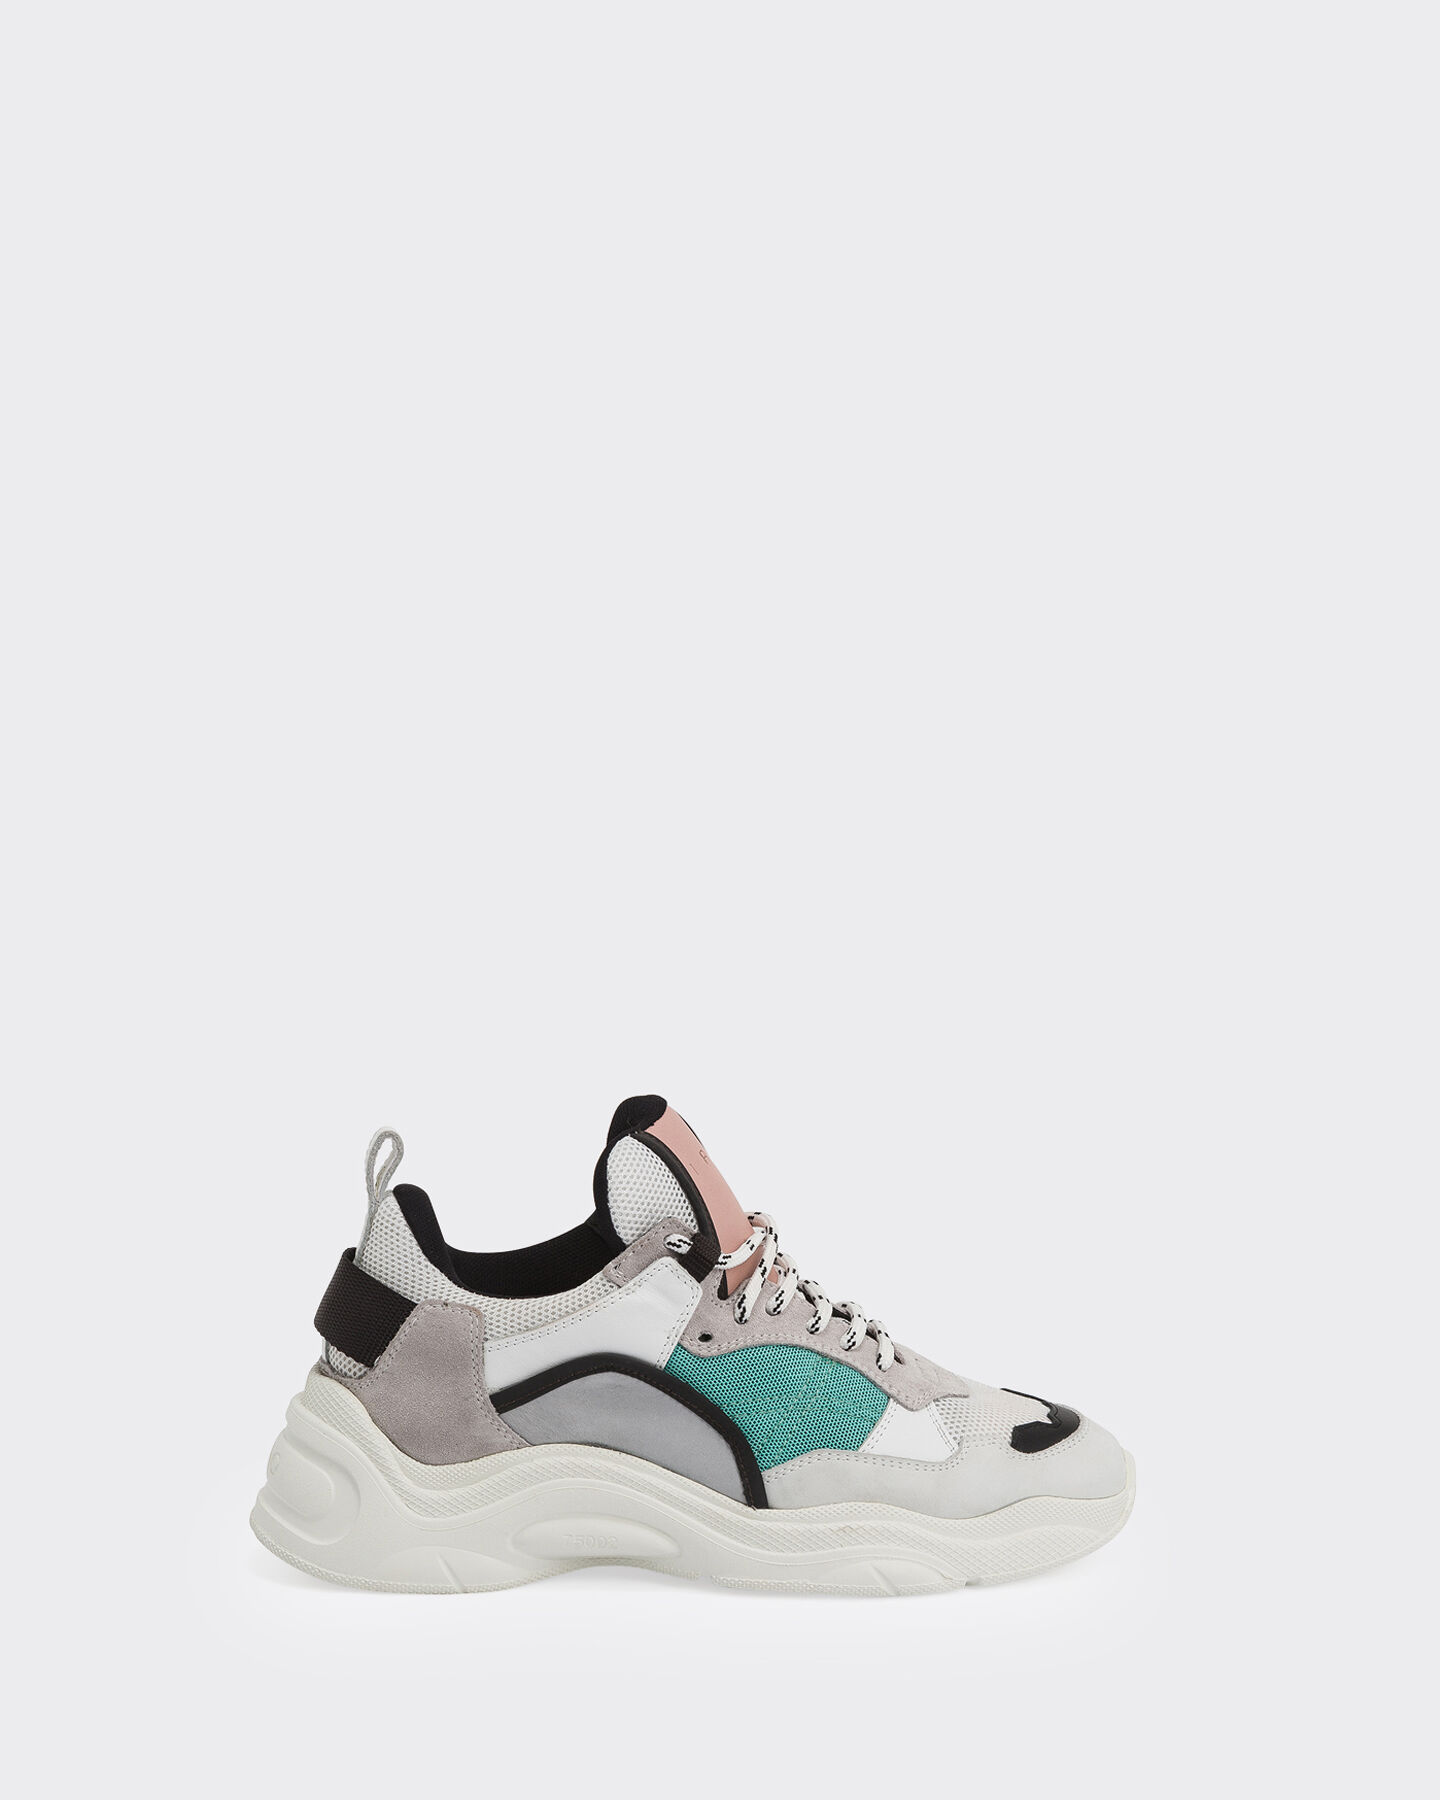 CollectionCurverunner 2019 Iro Spring Summer Sneakers gIf6yvbY7